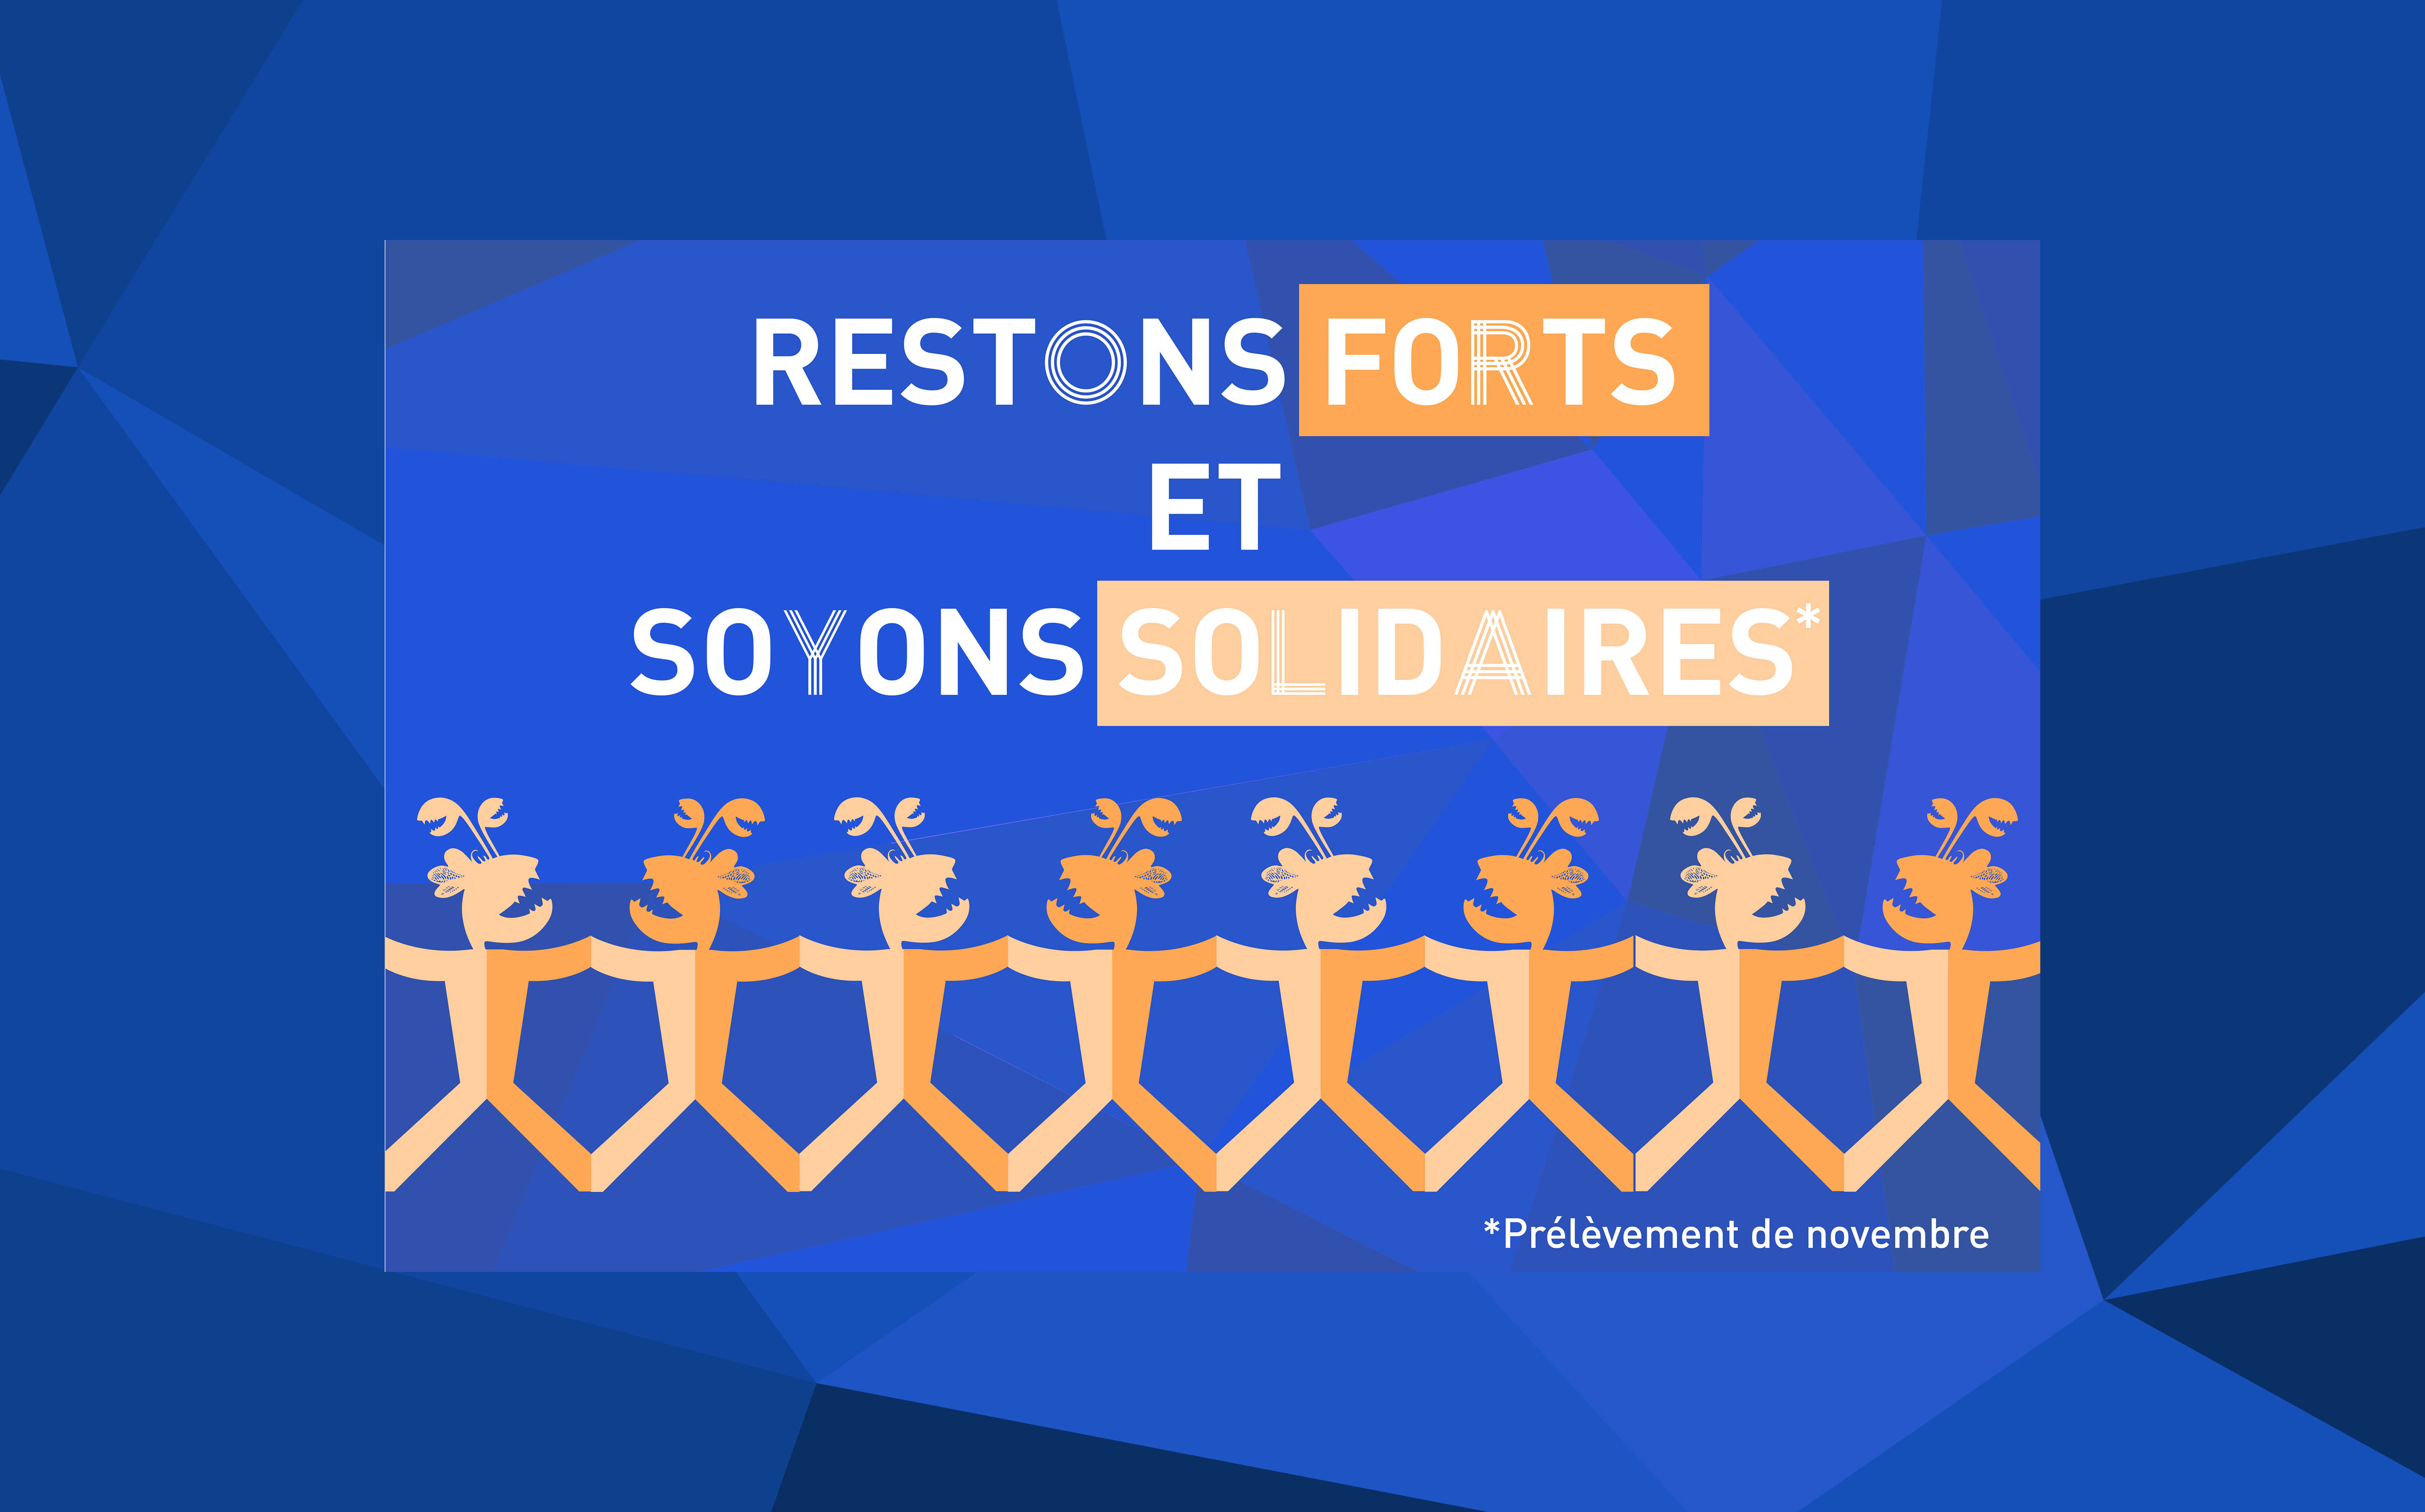 RESTONS FORTS ET SOYONS SOLIDAIRES AVEC BLOCK'OUT